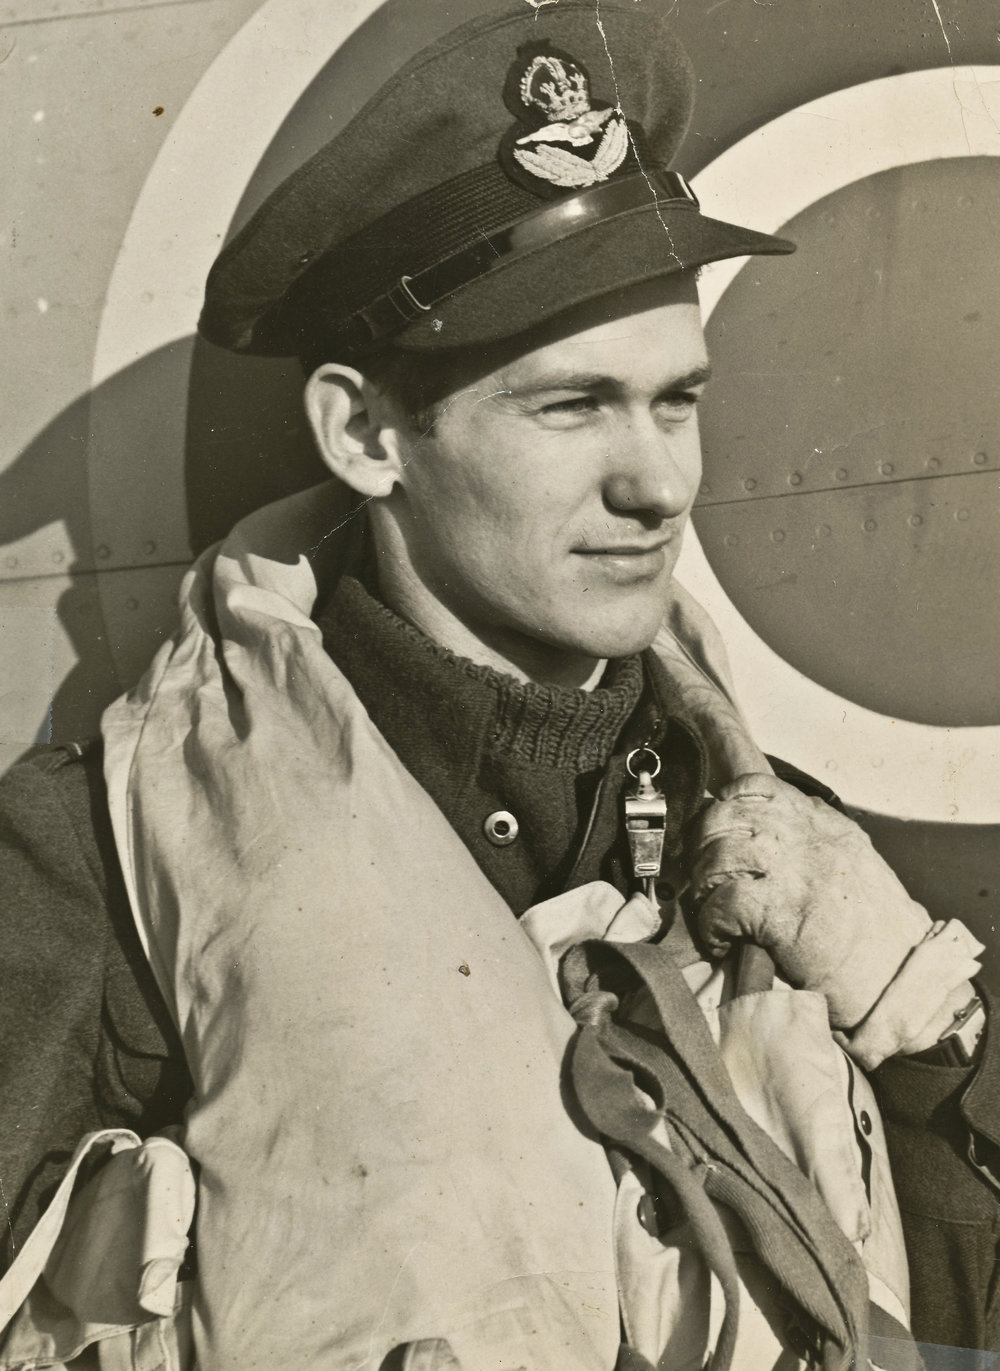 F/L Wally Ward, who flew Typhoons with RCAF No. 440 Squadron, was at Eindhoven when the Luftwaffe attacked on New Year's Day, 1945